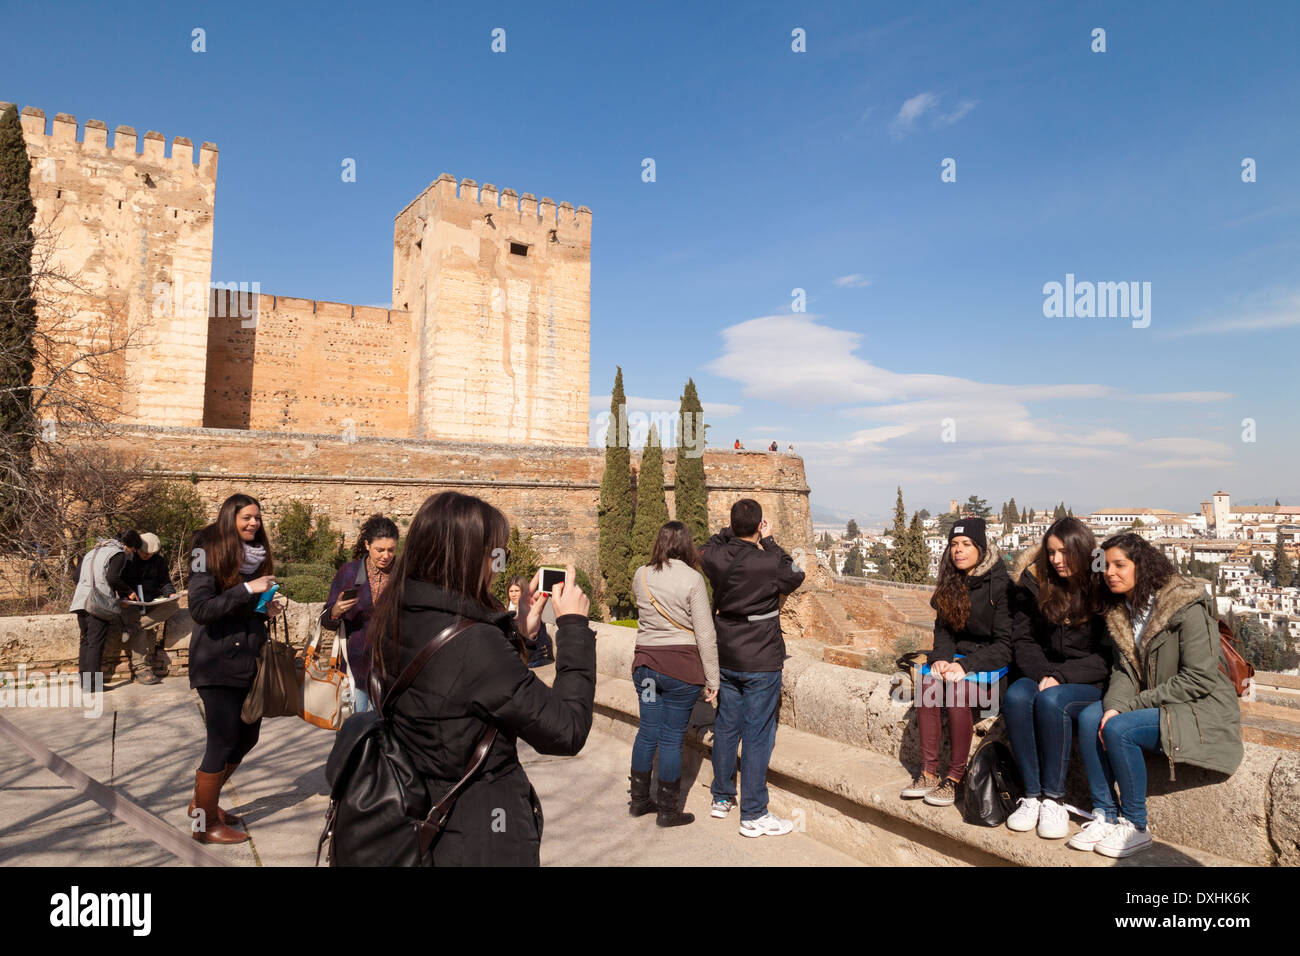 Visitors taking photos at the Alcazaba, part of the Alhambra Palace, Granada, Andalusia Spain Europe - Stock Image